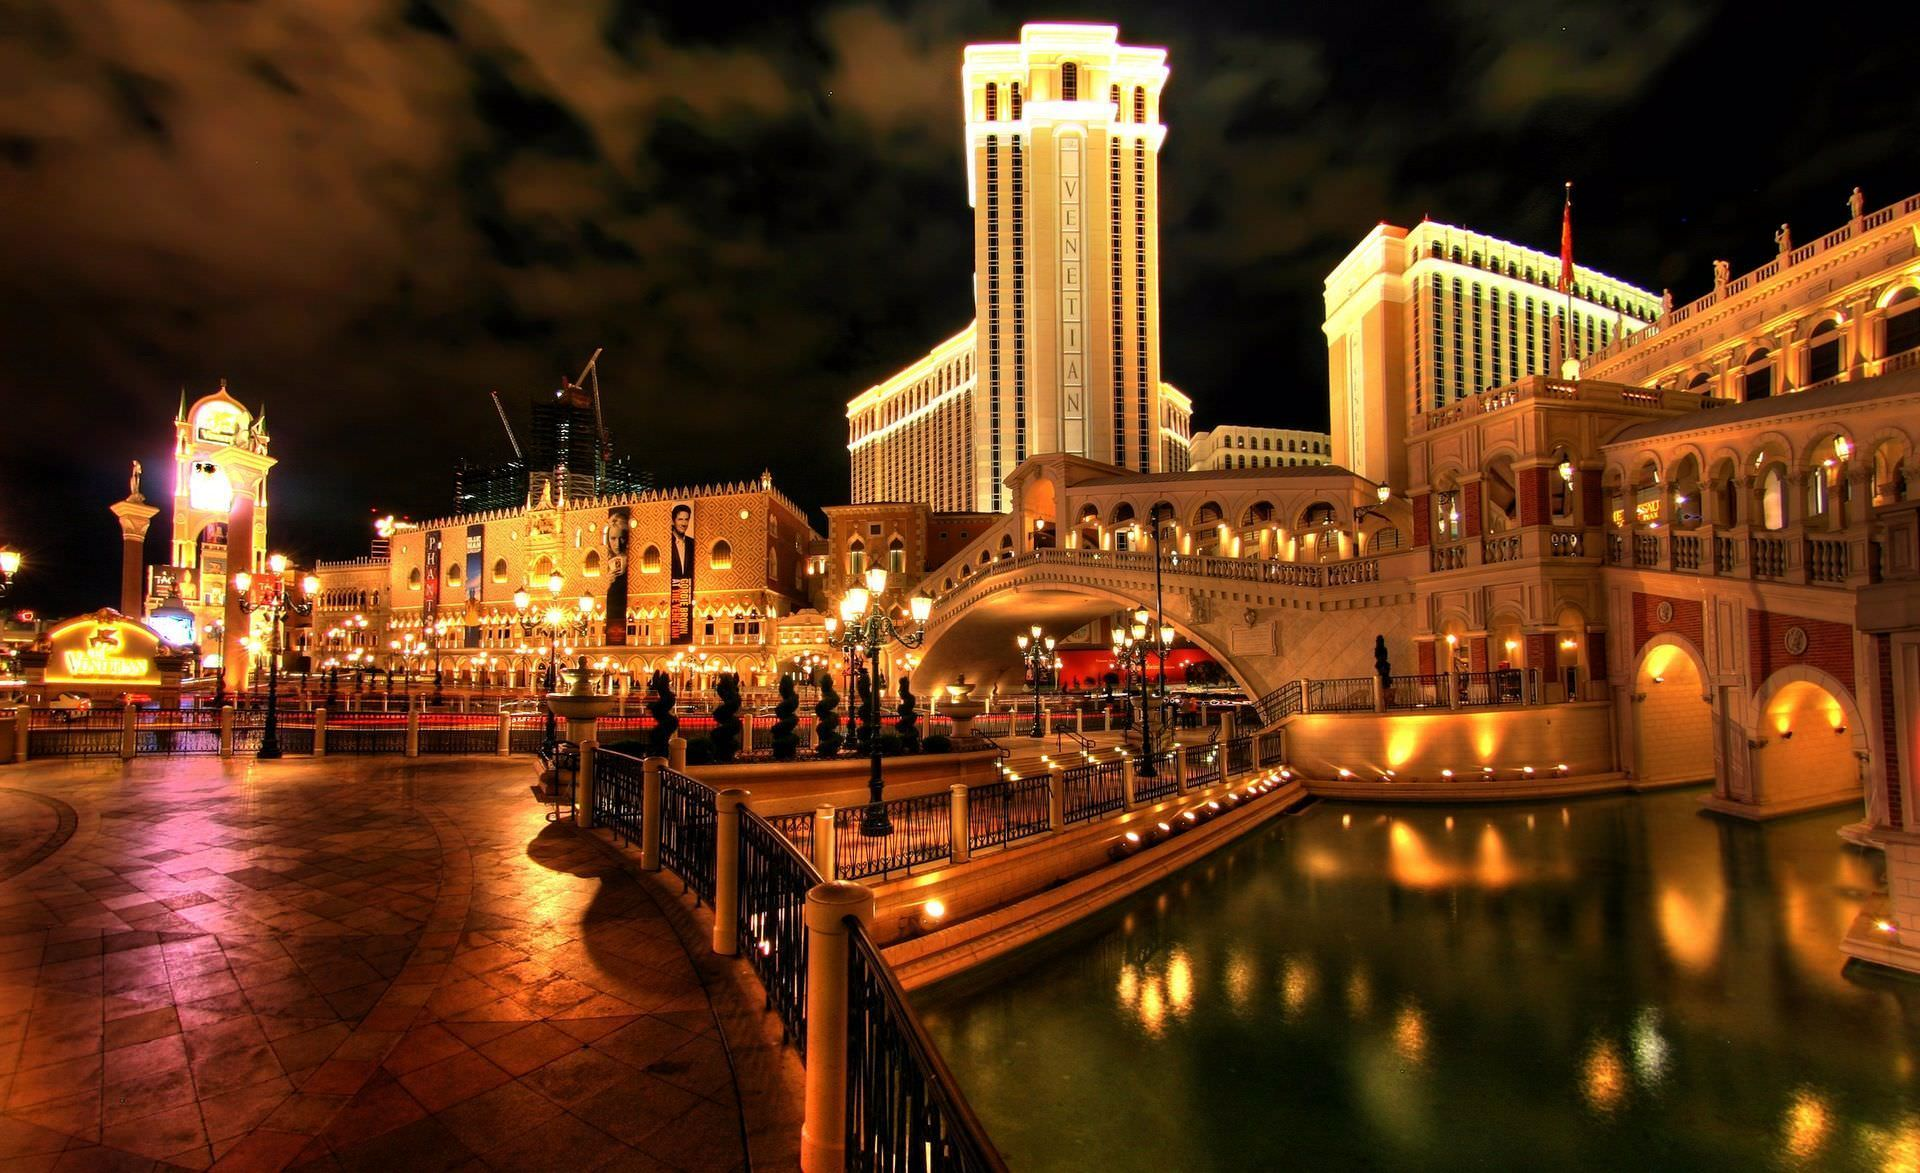 italy casino city wallpaper